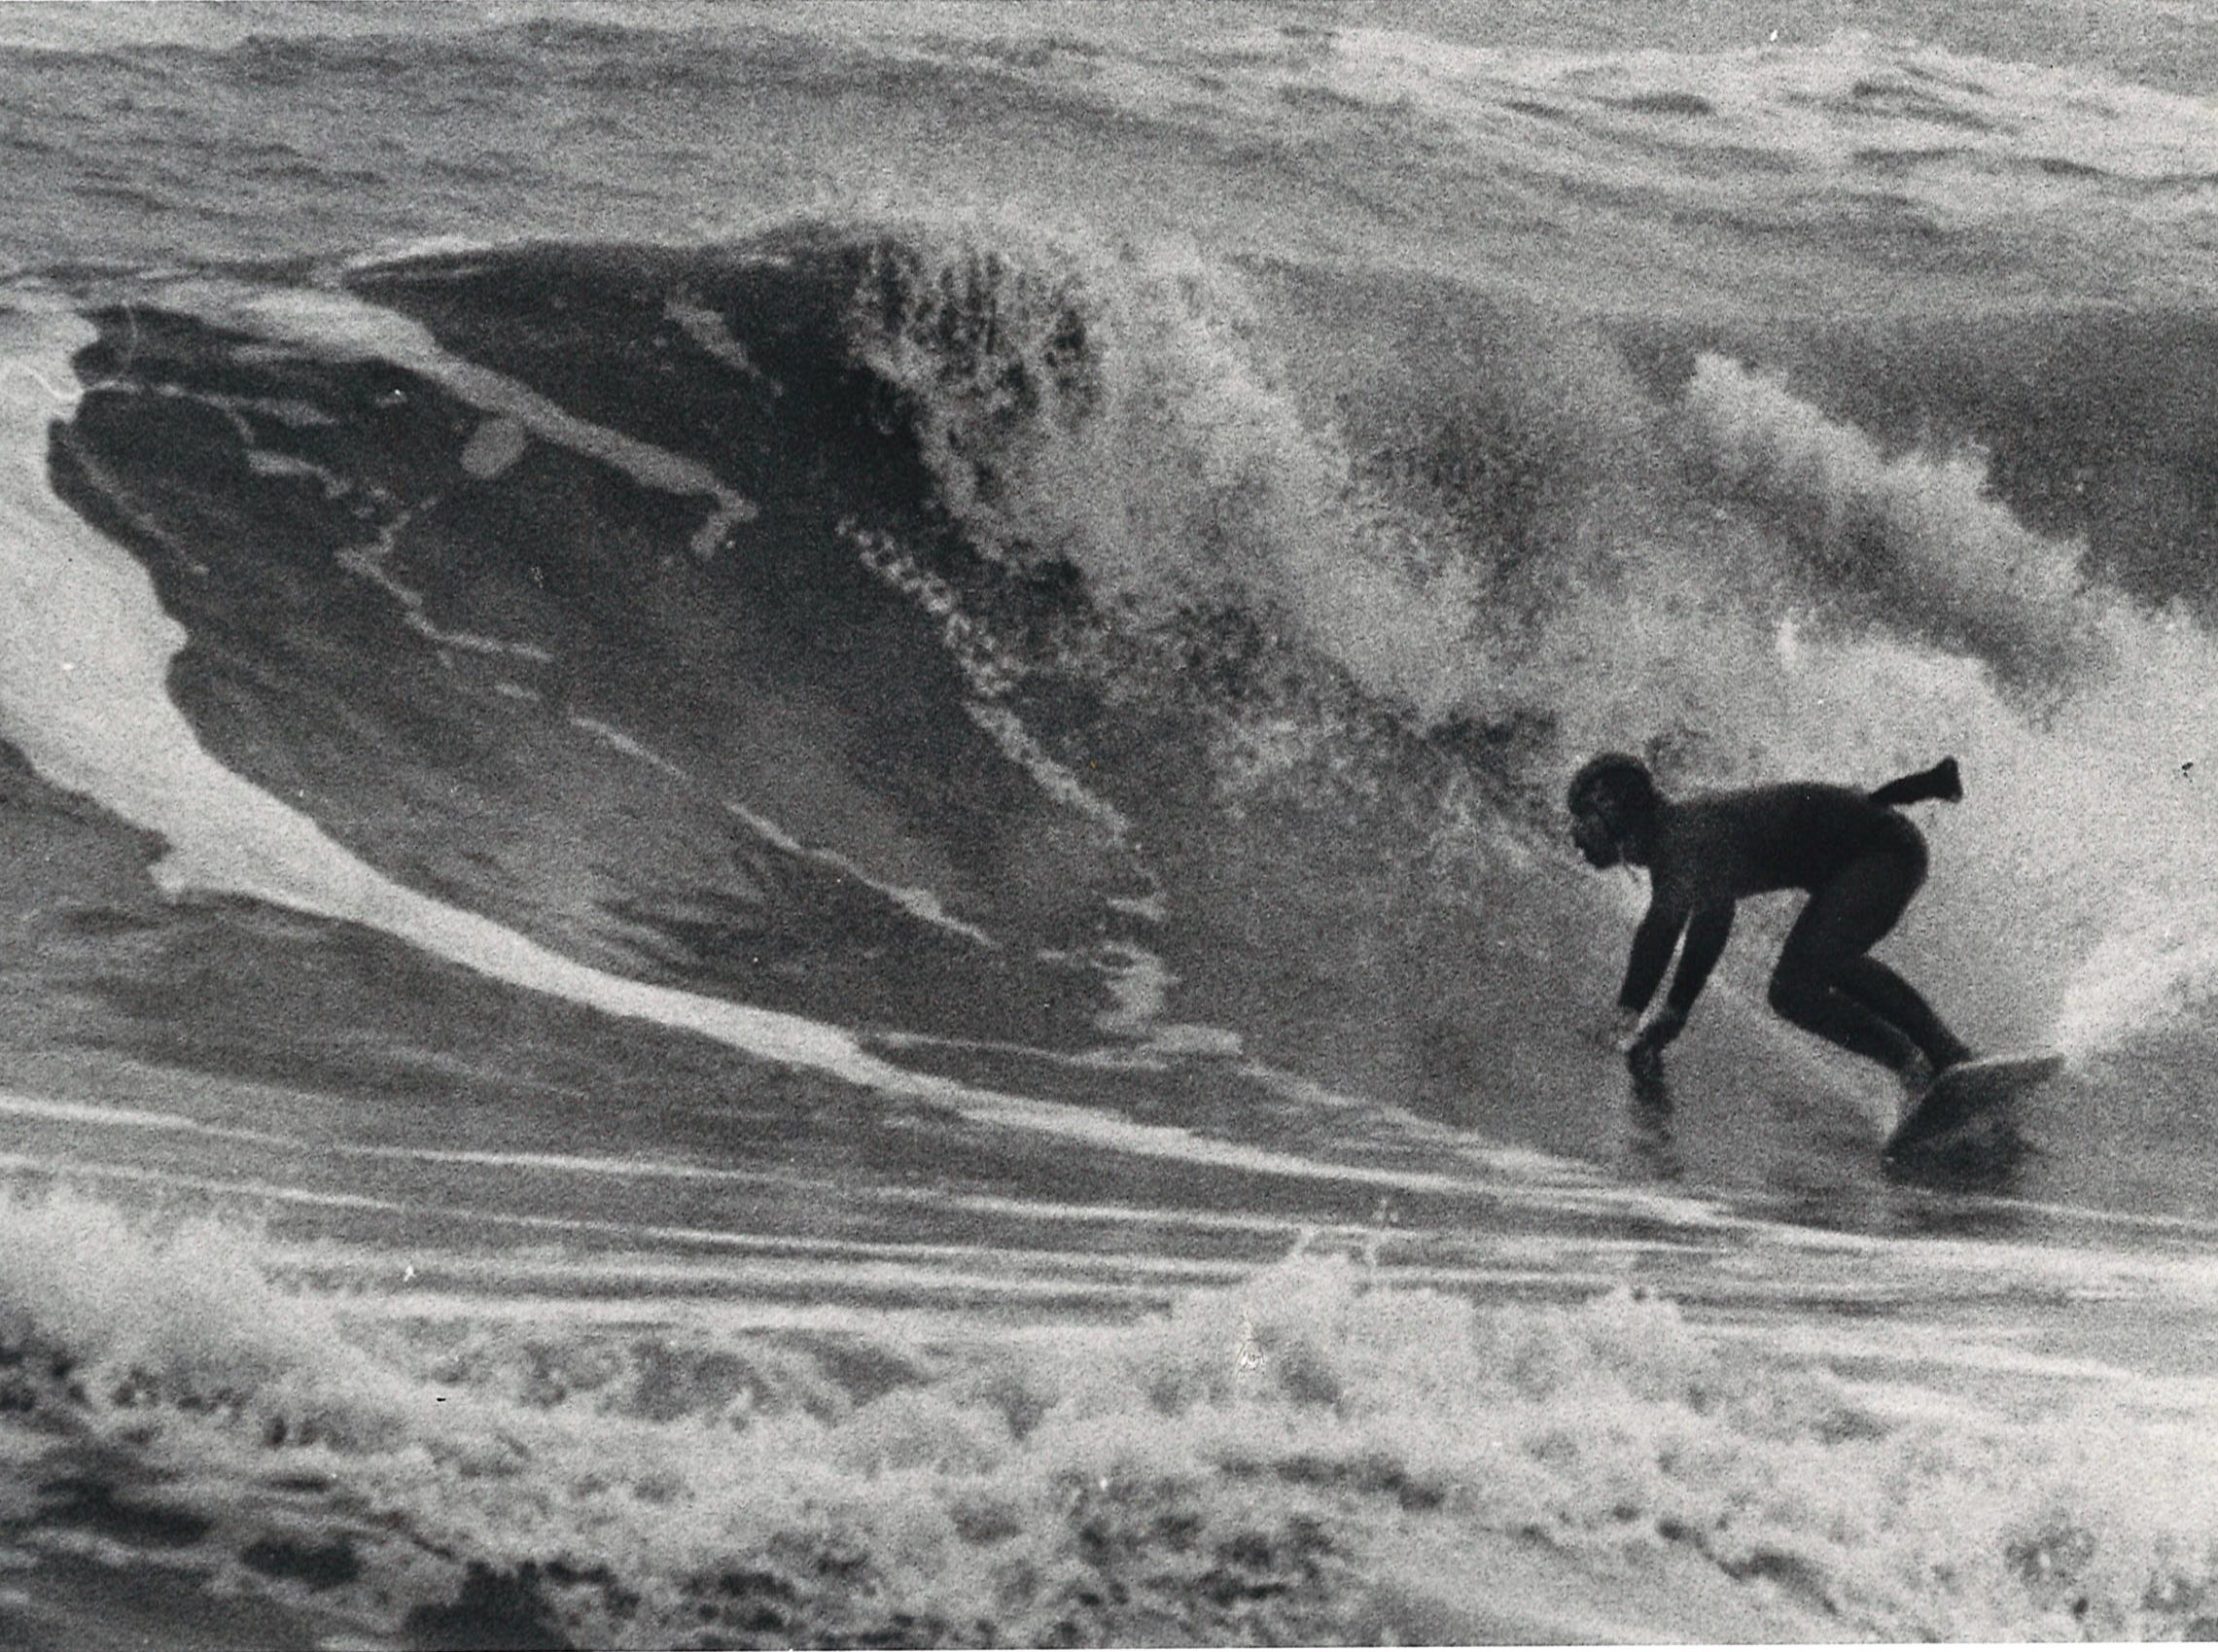 Jessie Andrews surfs in Corpus Christi in February 1978.